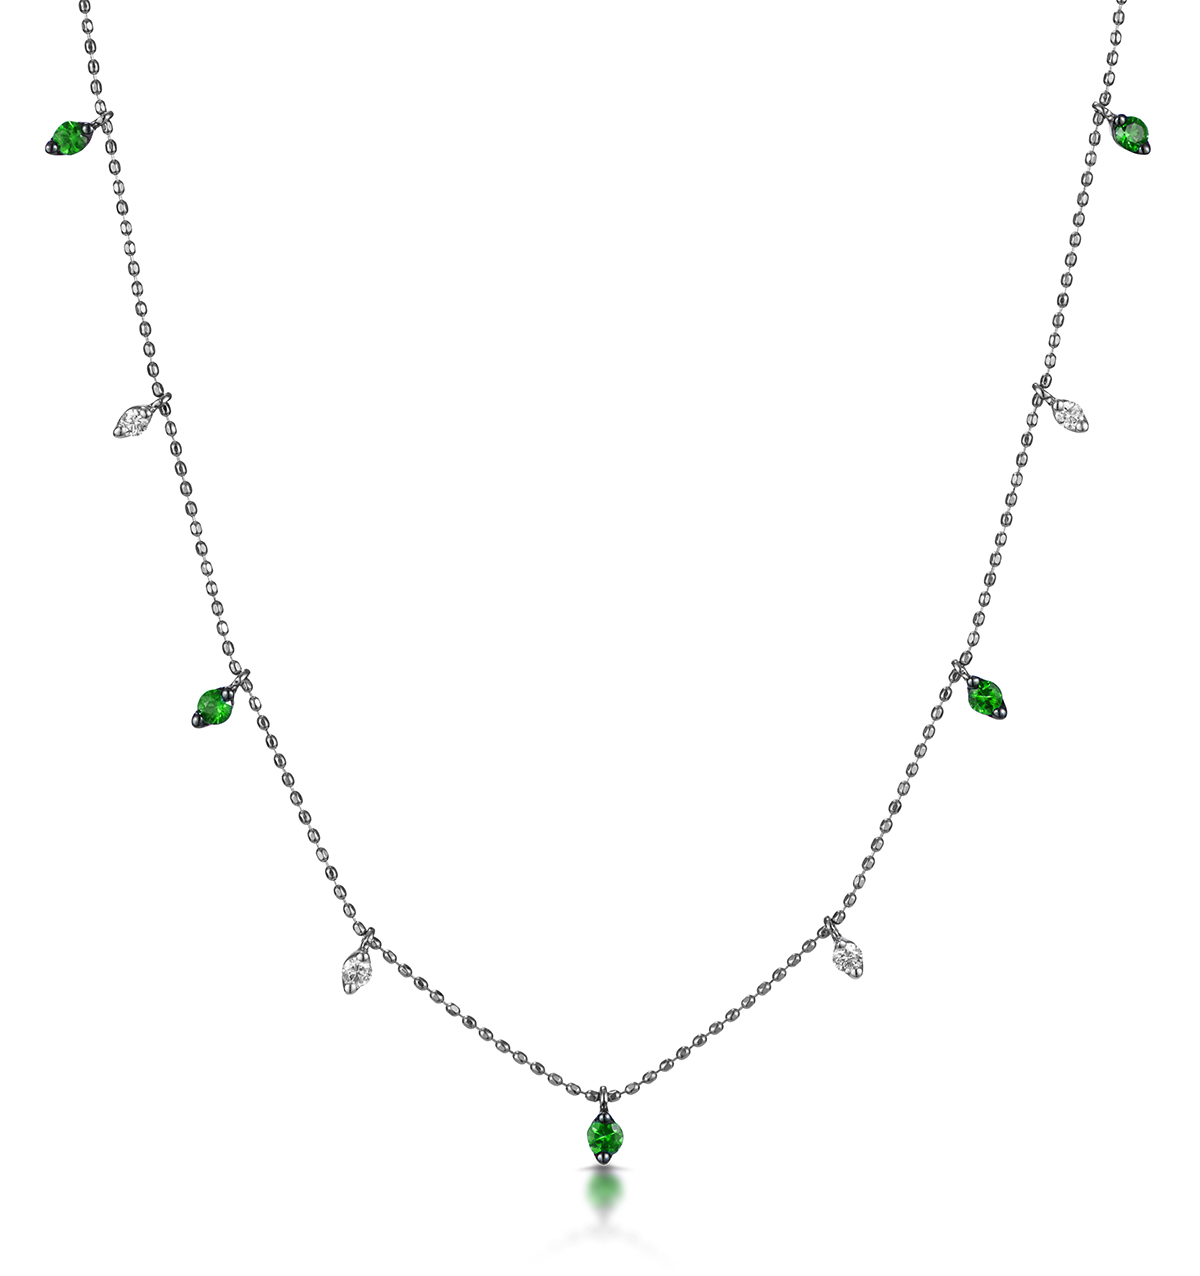 EMERALD AND DIAMOND NECKLACE IN 18K WHITE GOLD - VIVARA COLLECTION